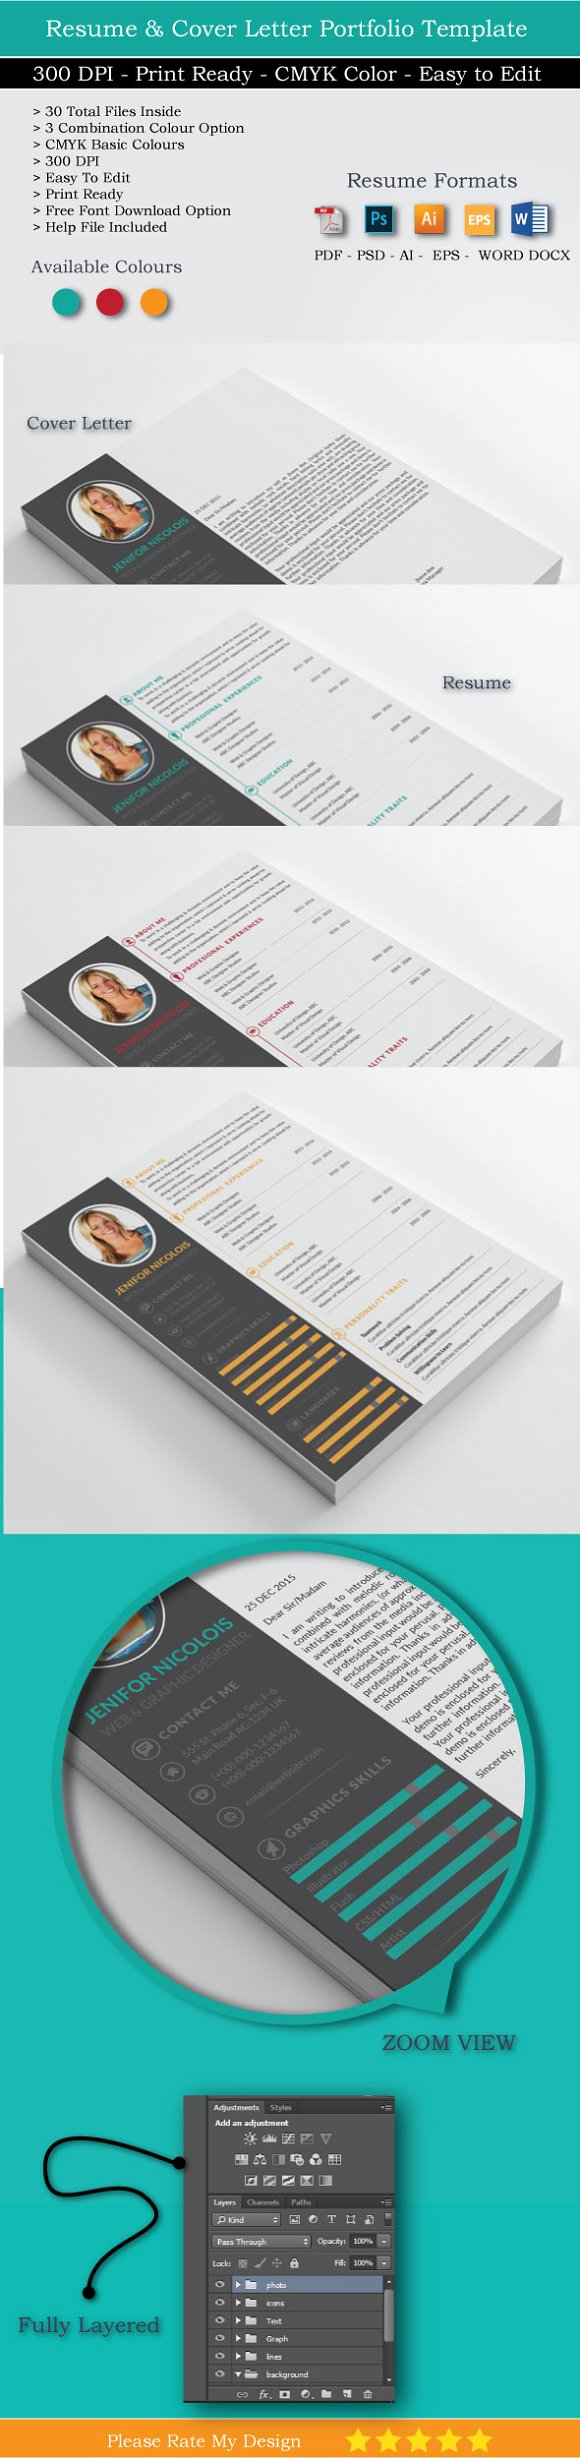 Cv resume and cover letter resume templates creative market yelopaper Images